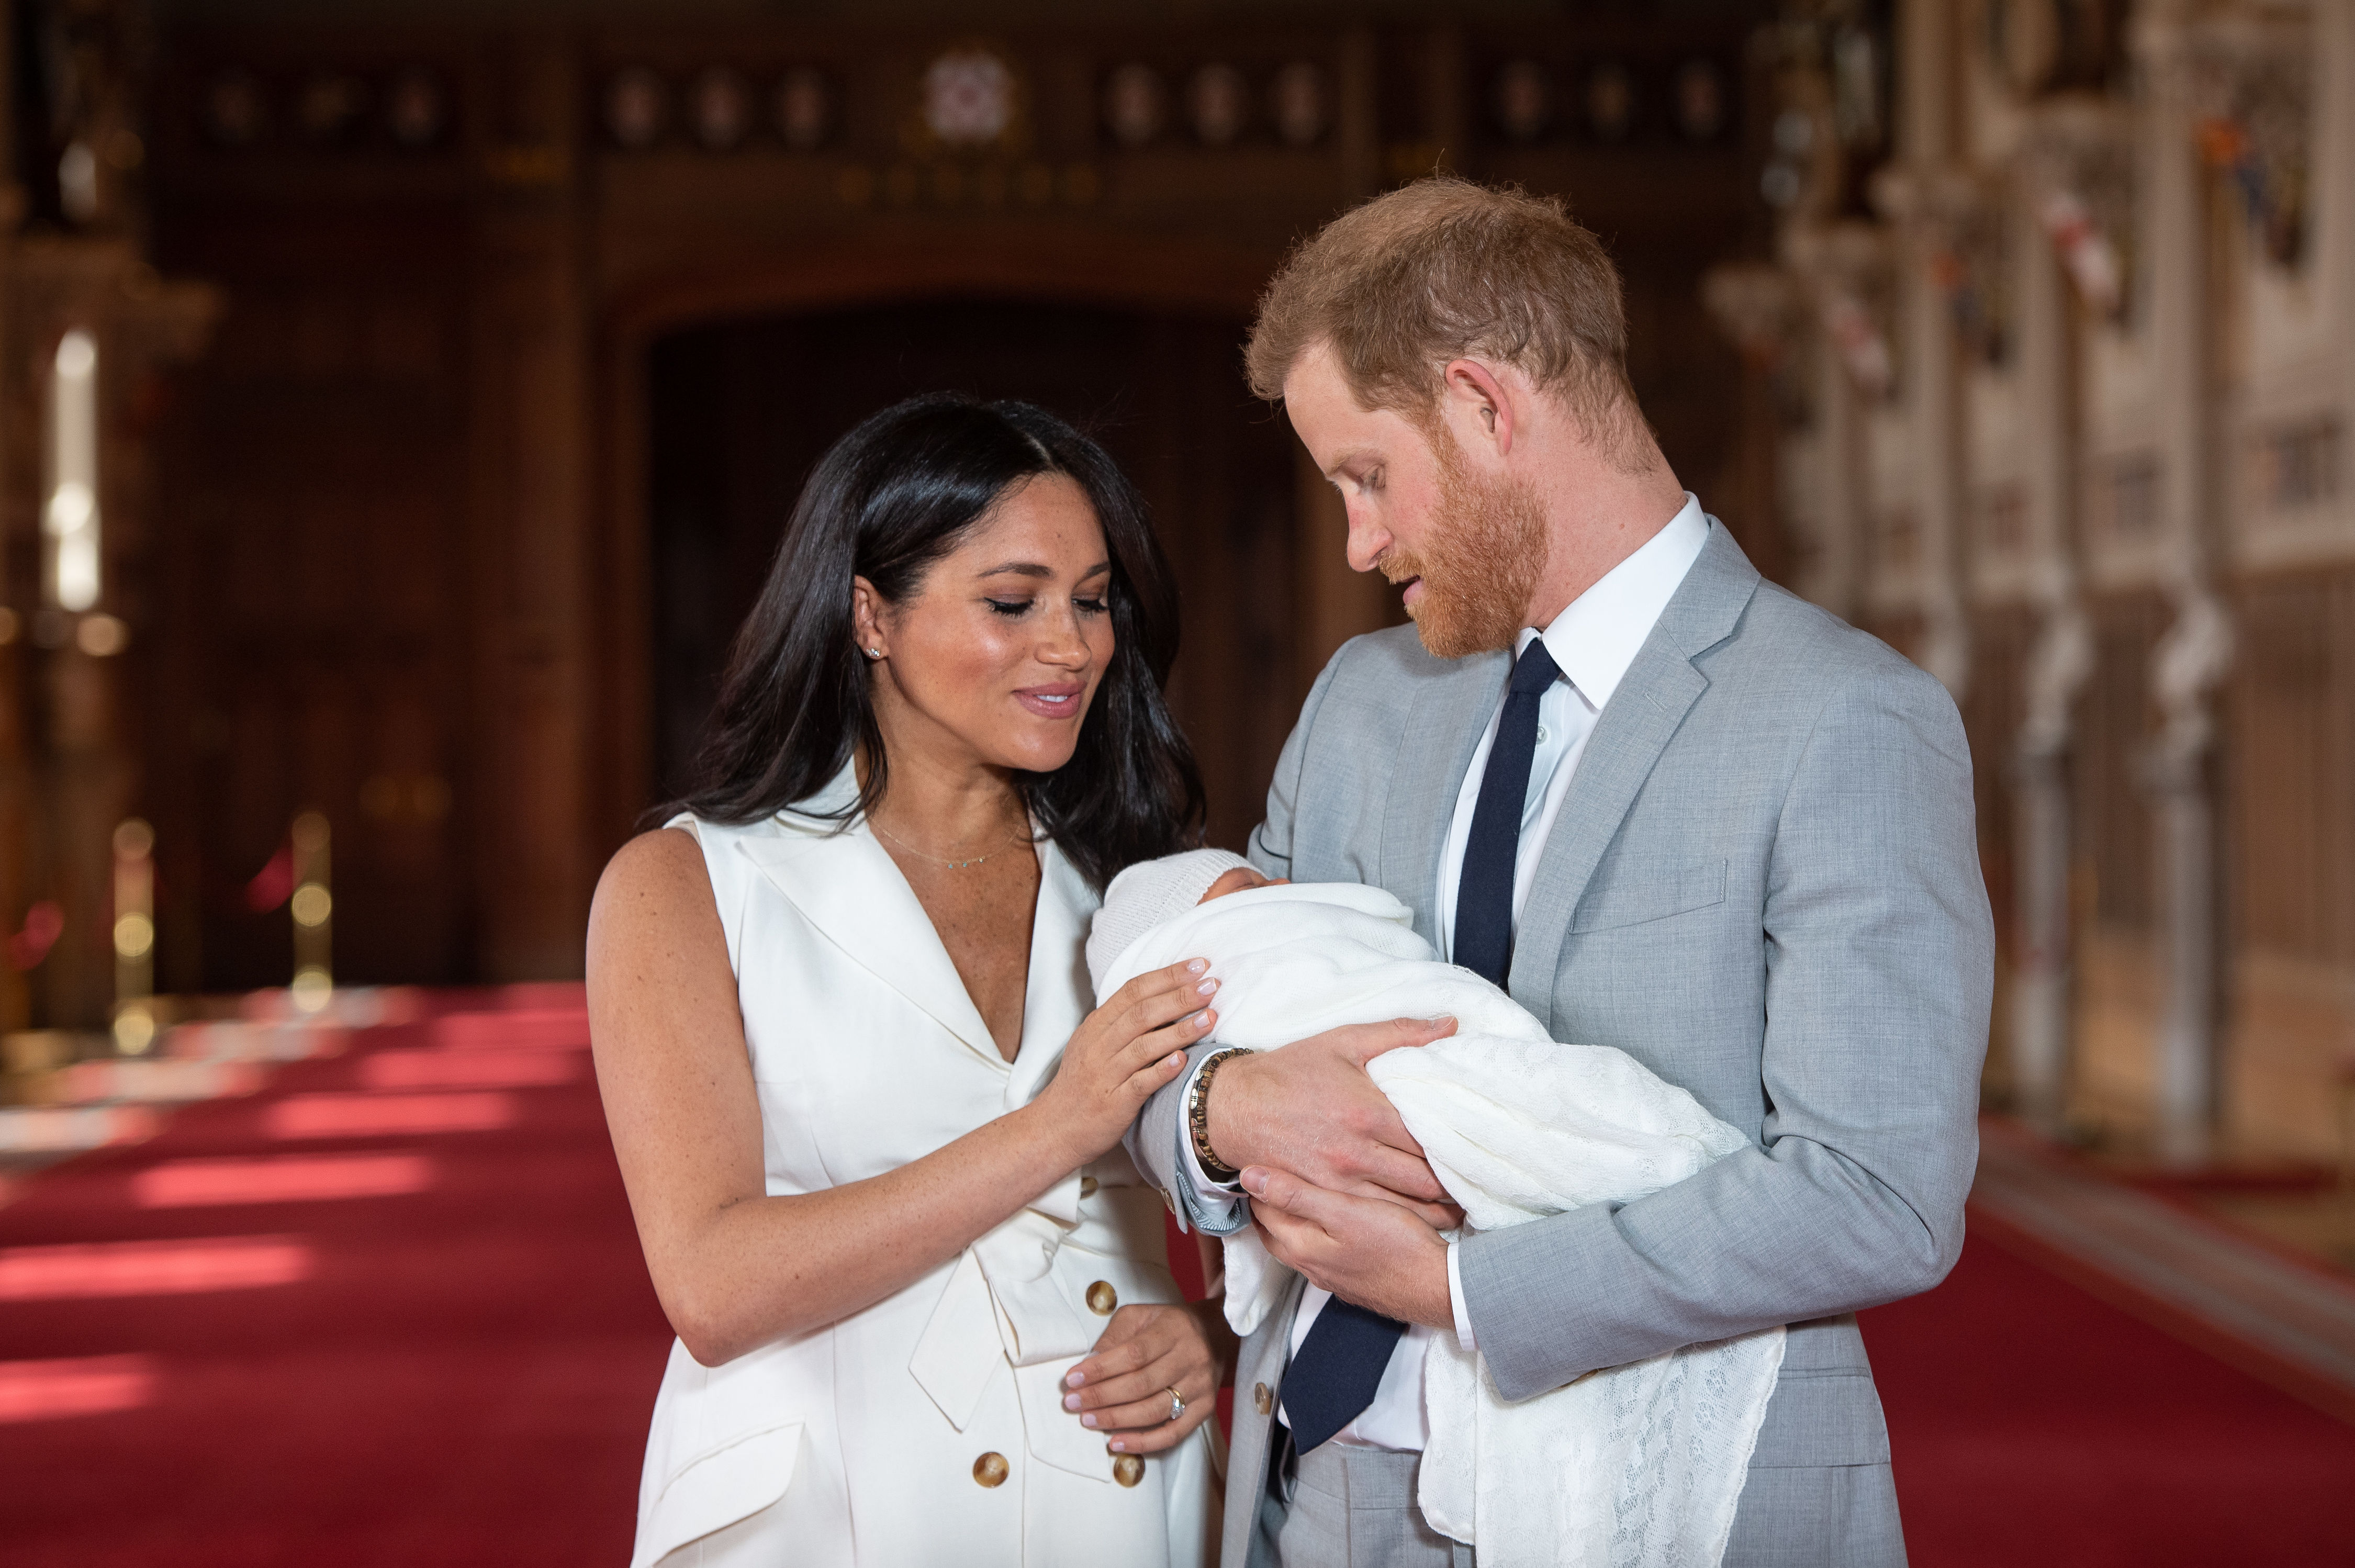 5 Lessons We Stole from the Royal Baby Announcement